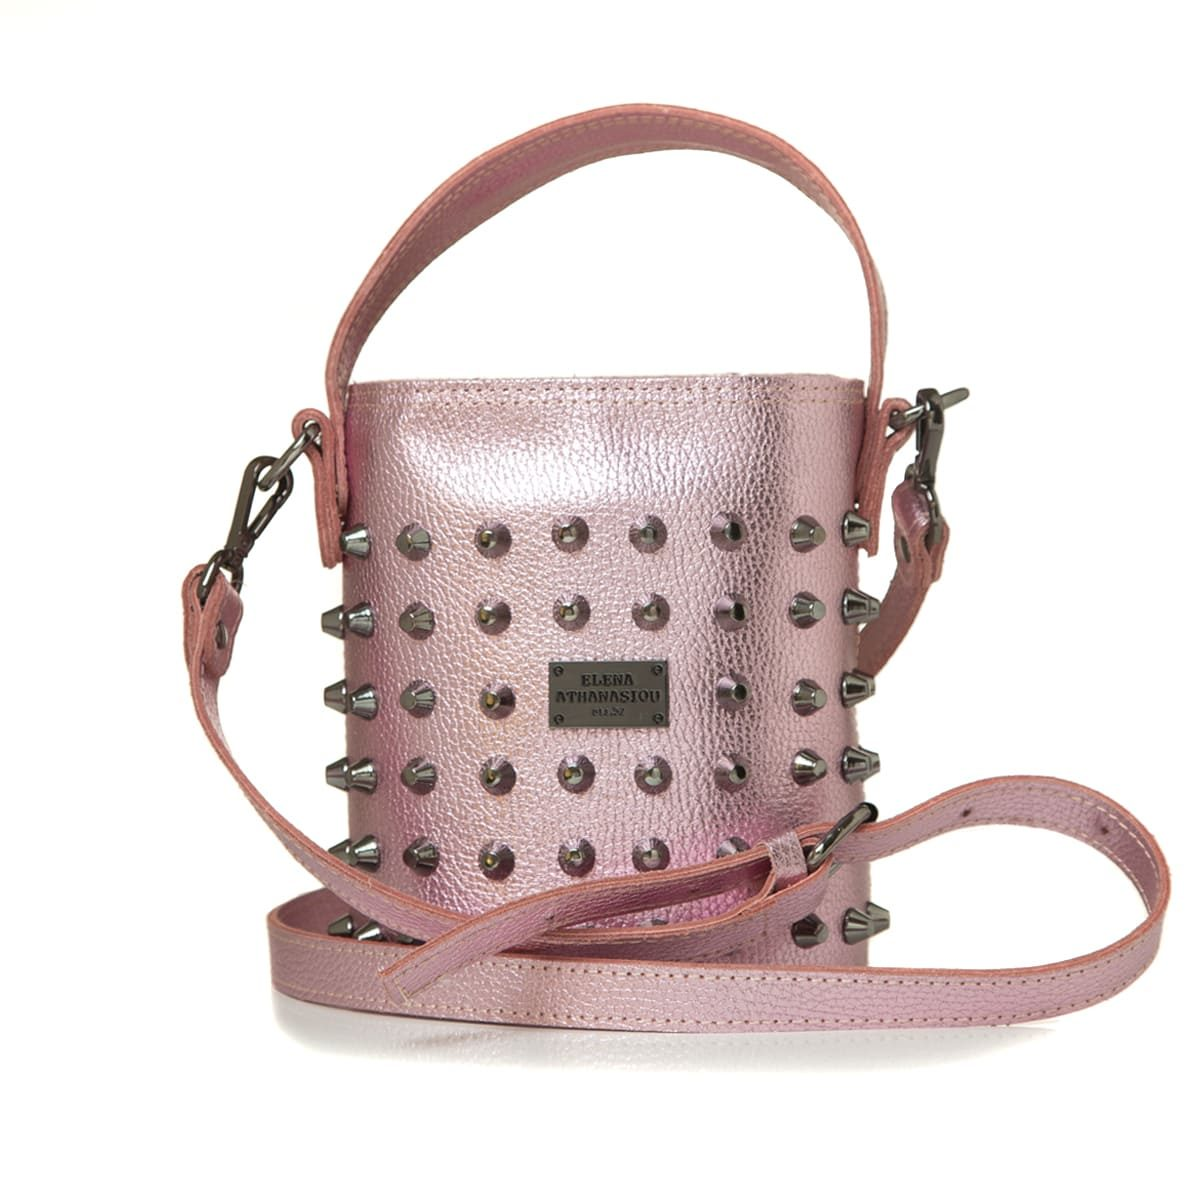 Elena Athanasiou Bags Basket Party Pink Small